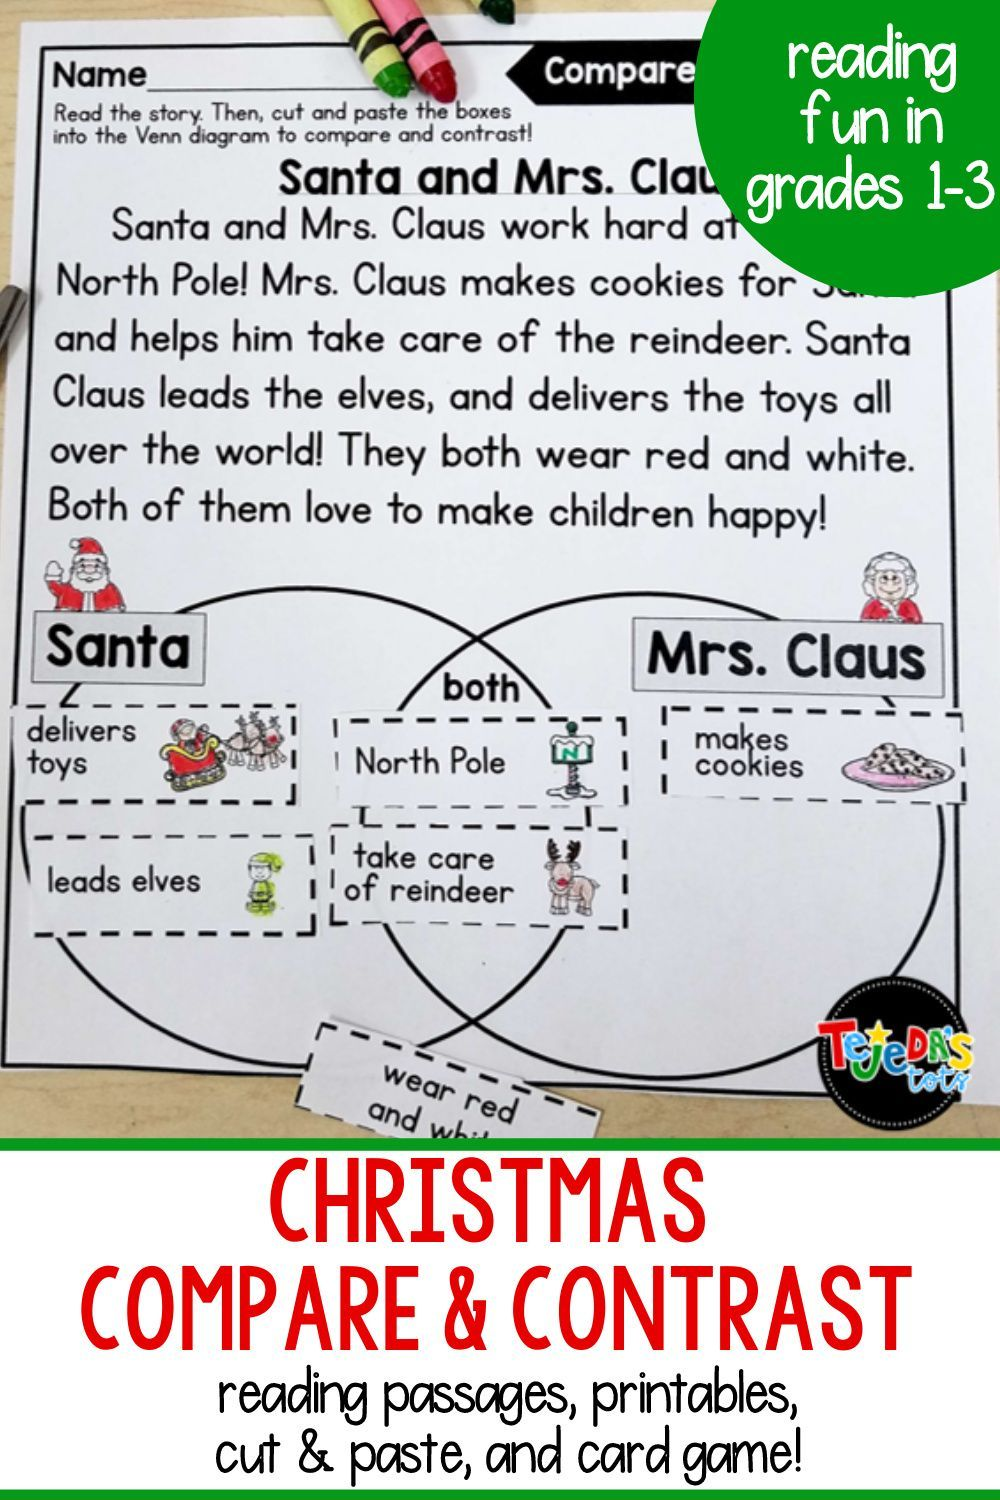 Christmas Compare And Contrast Passages Printables Compare And Contrast Christmas Reading Comprehension Reading Comprehension Activities [ 1500 x 1000 Pixel ]